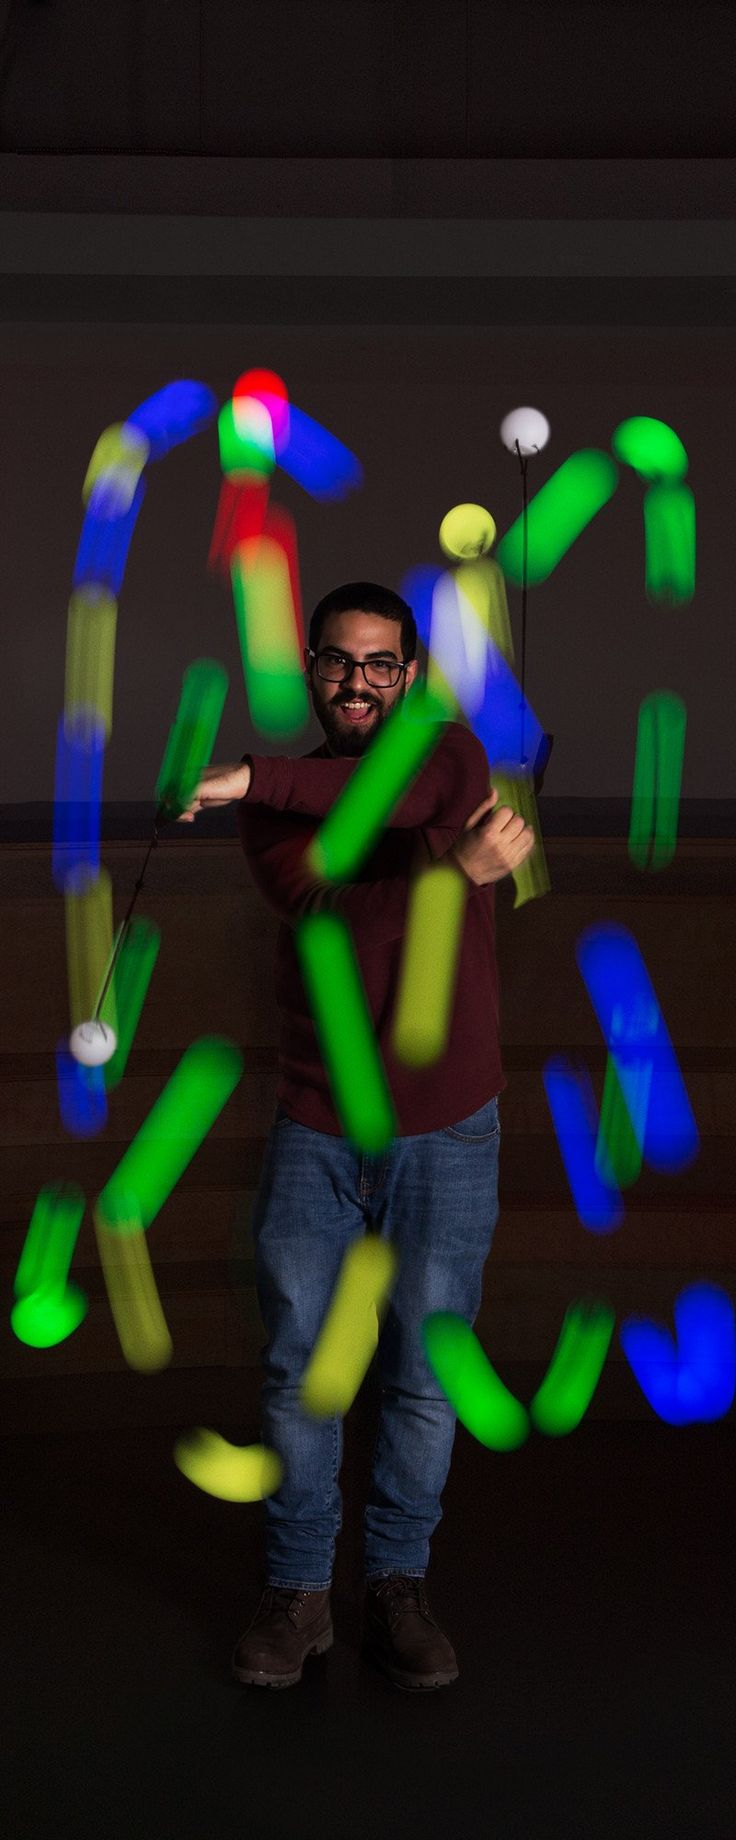 Create light patterns in the air while also exercising your coordination and dexterity with SpinBalls' LED Poi balls, discovered by The Grommet.